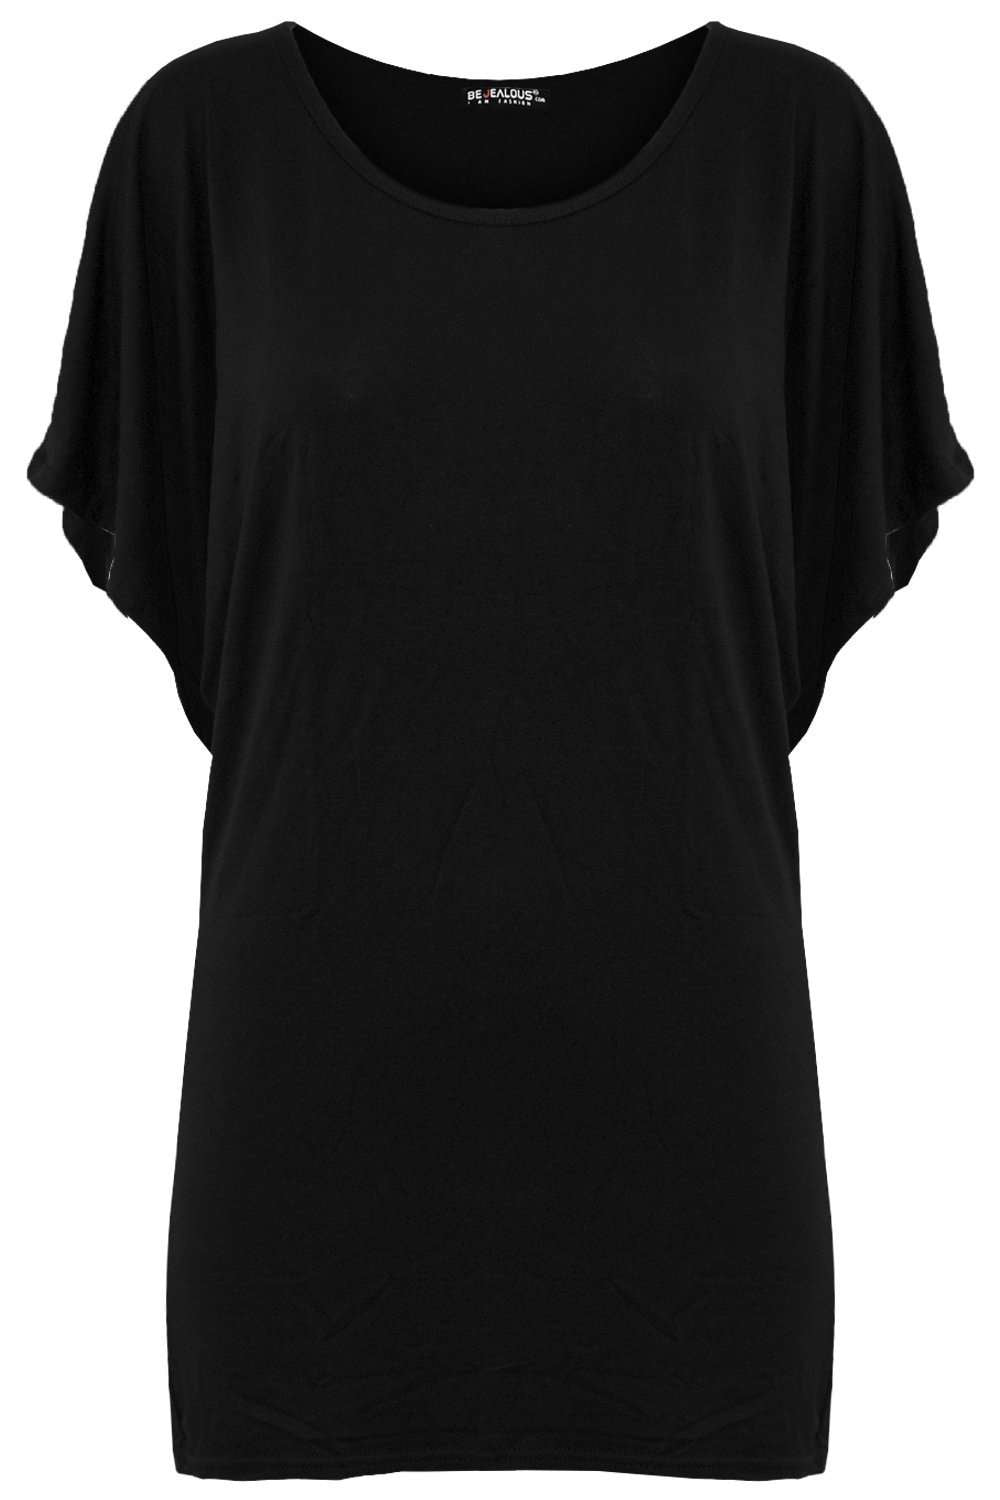 Melodie Plain Basic Bat Wing Tshirt - bejealous-com